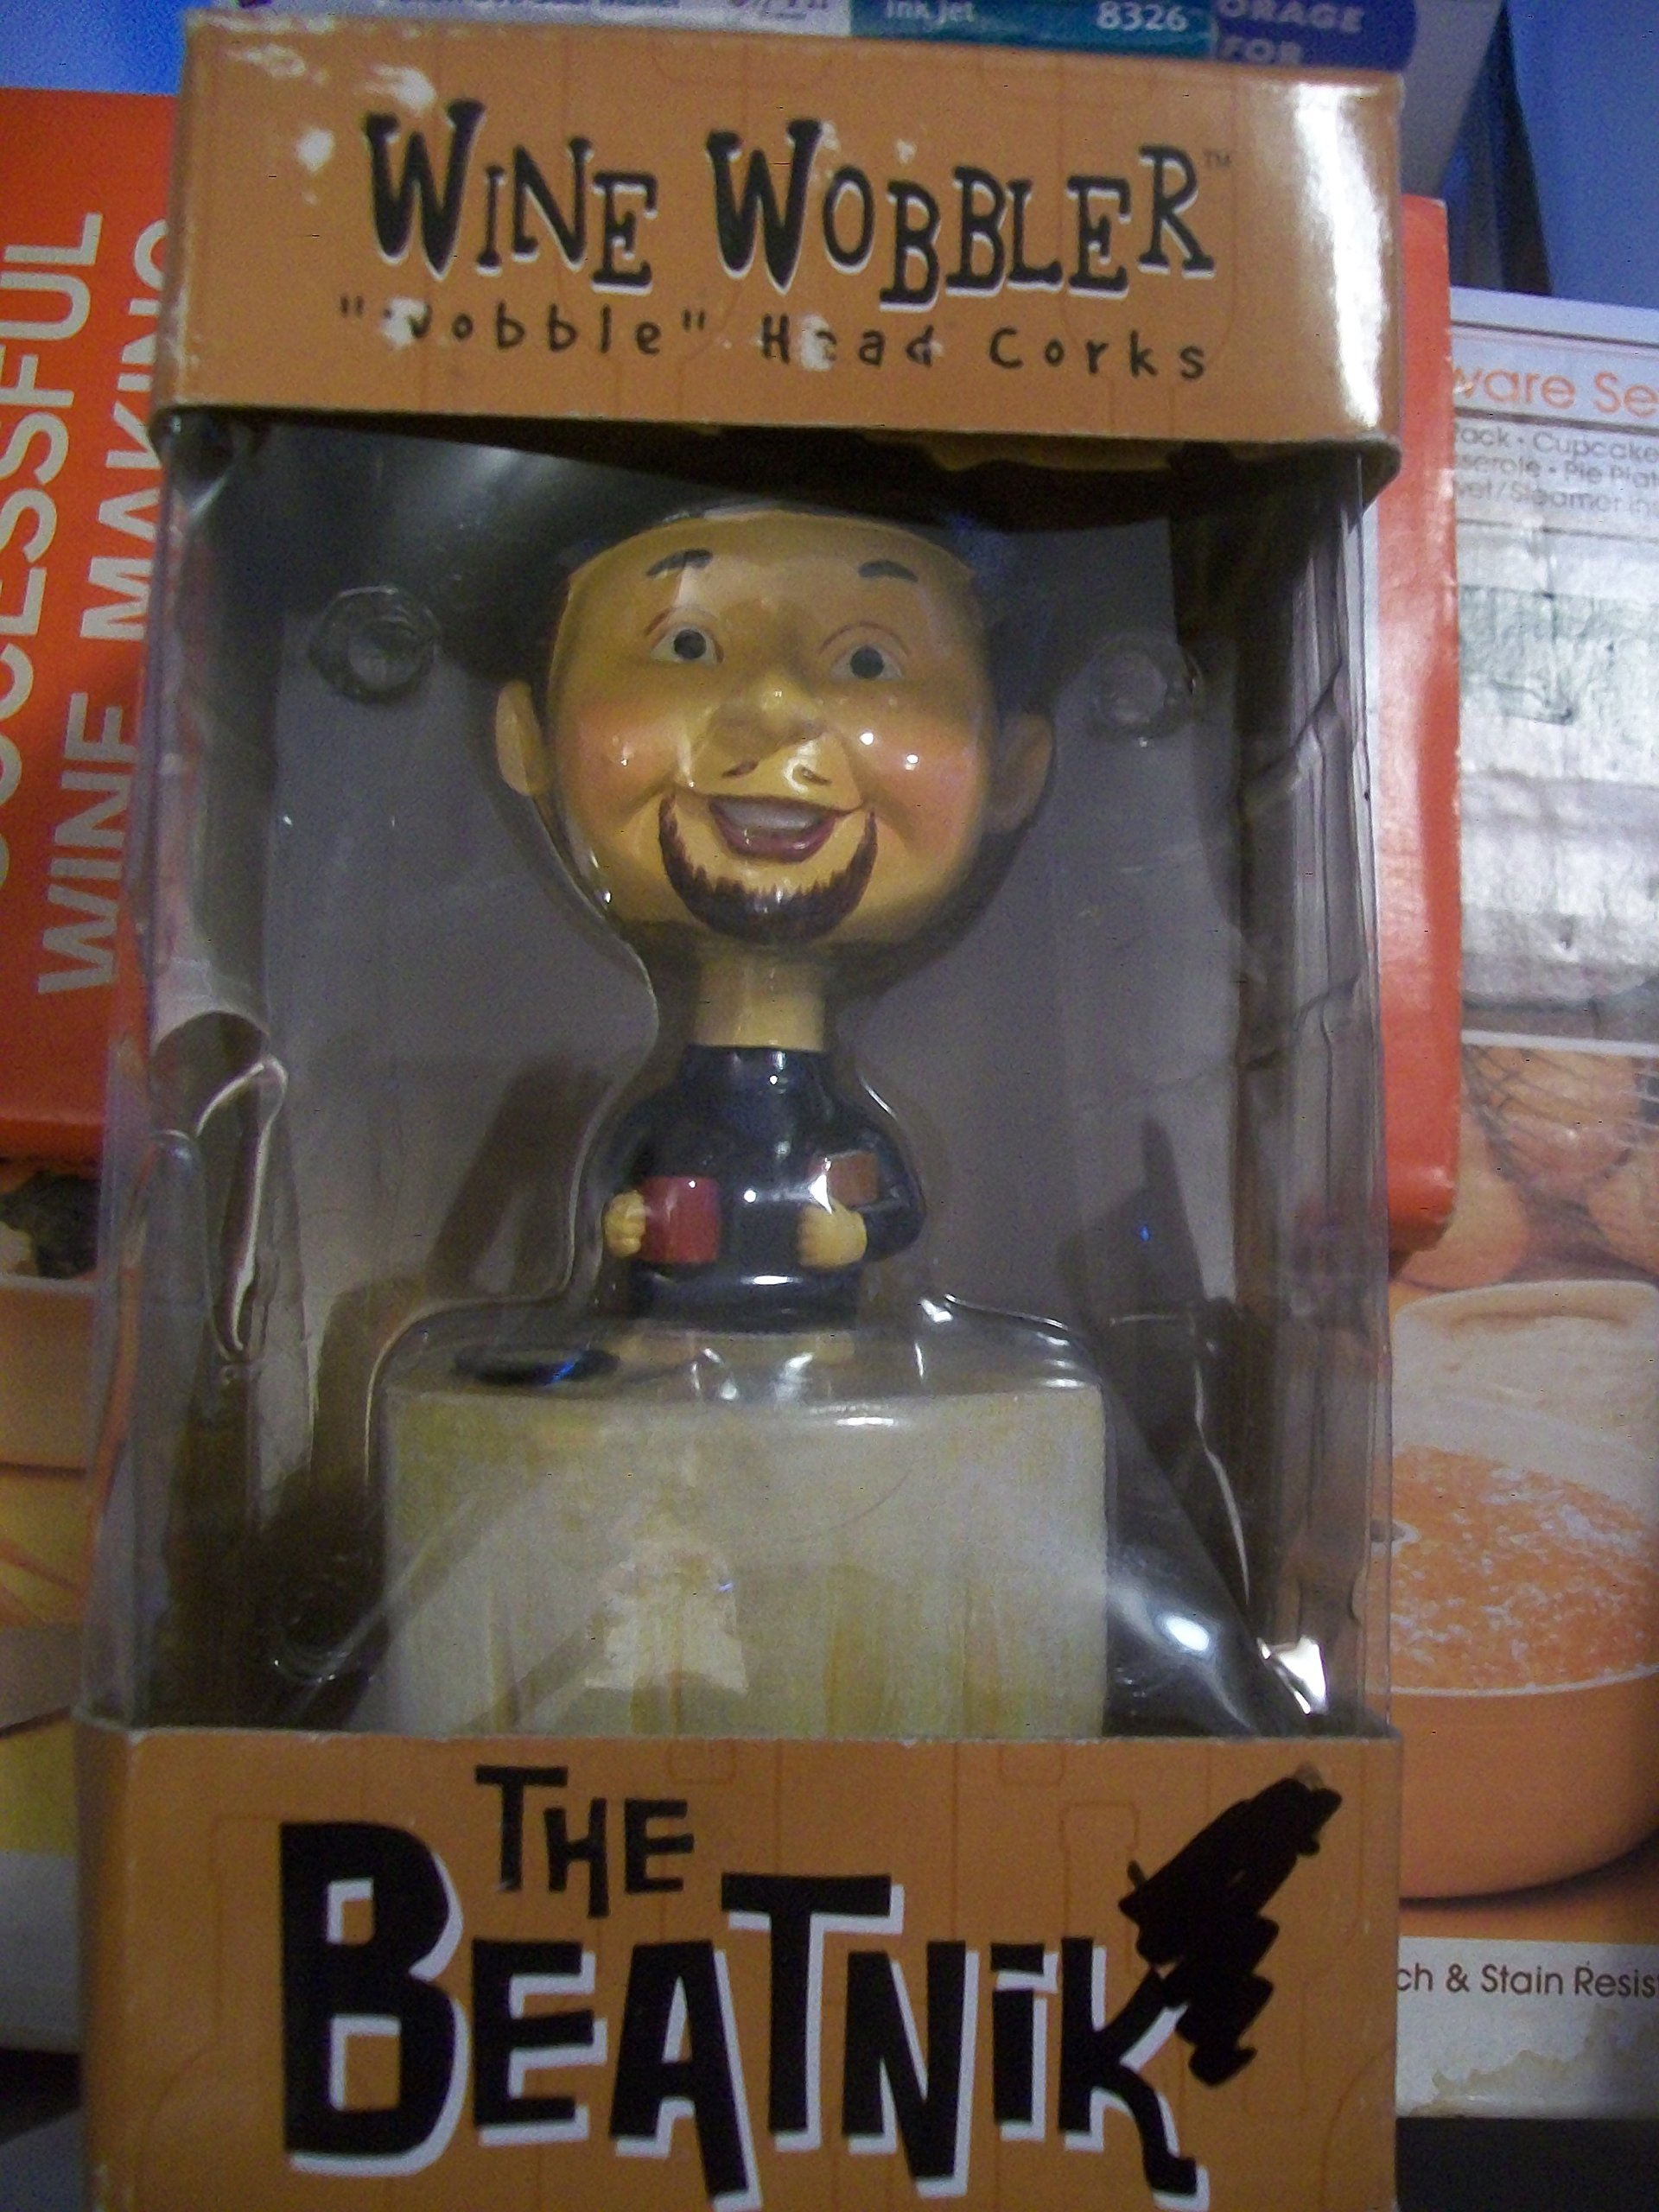 Wine Wobbler ''The Beatnik'' Wobble Head Corks